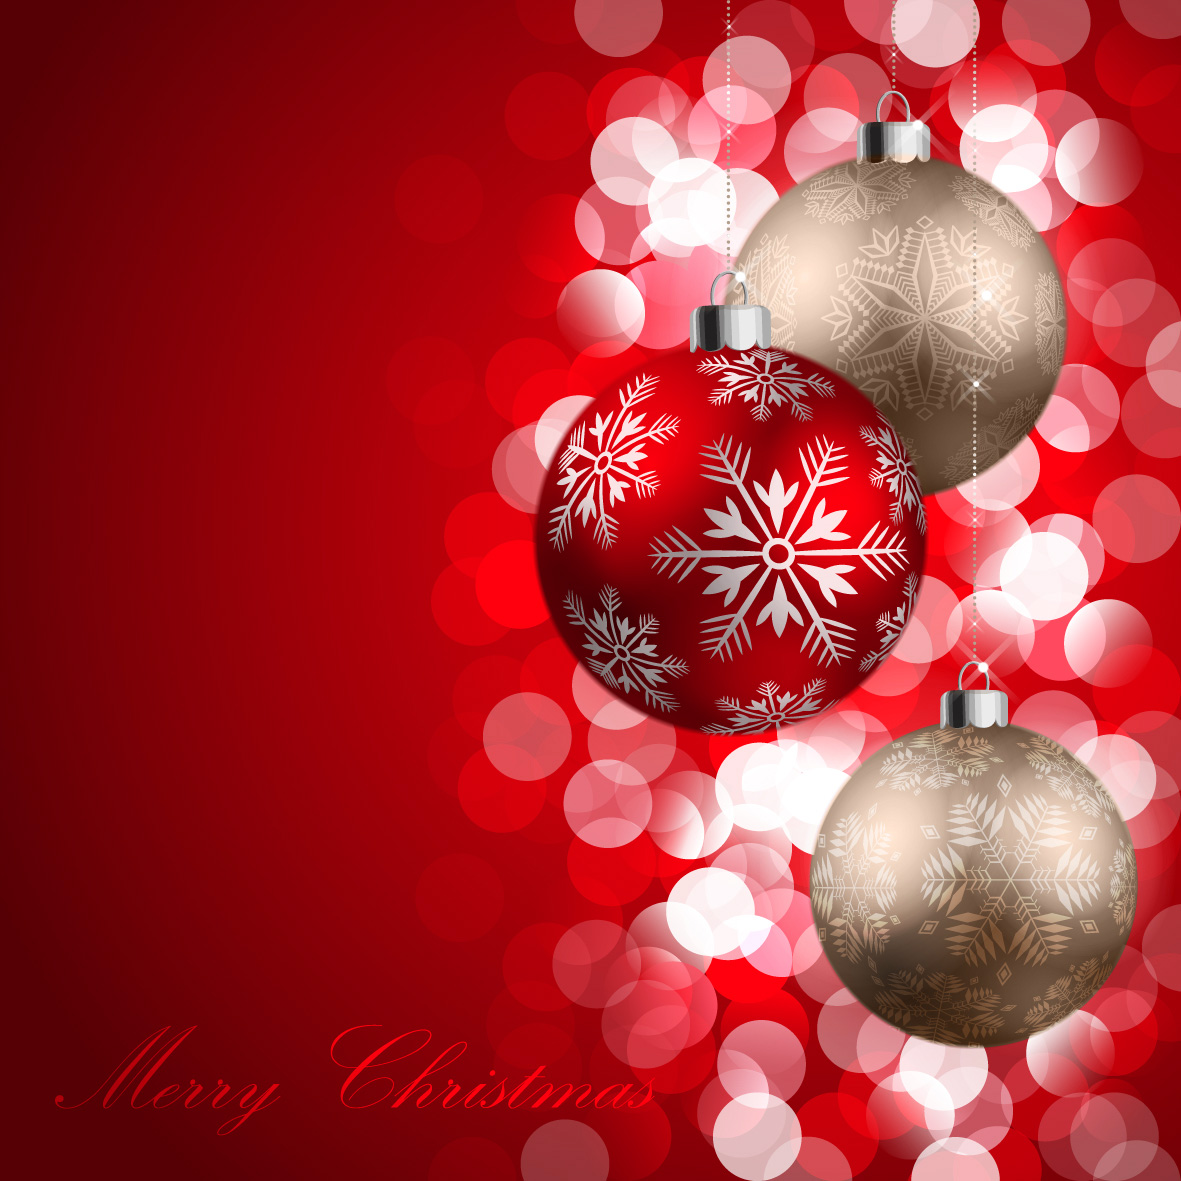 happy merry christmas red silver balls latest hd wallpaper